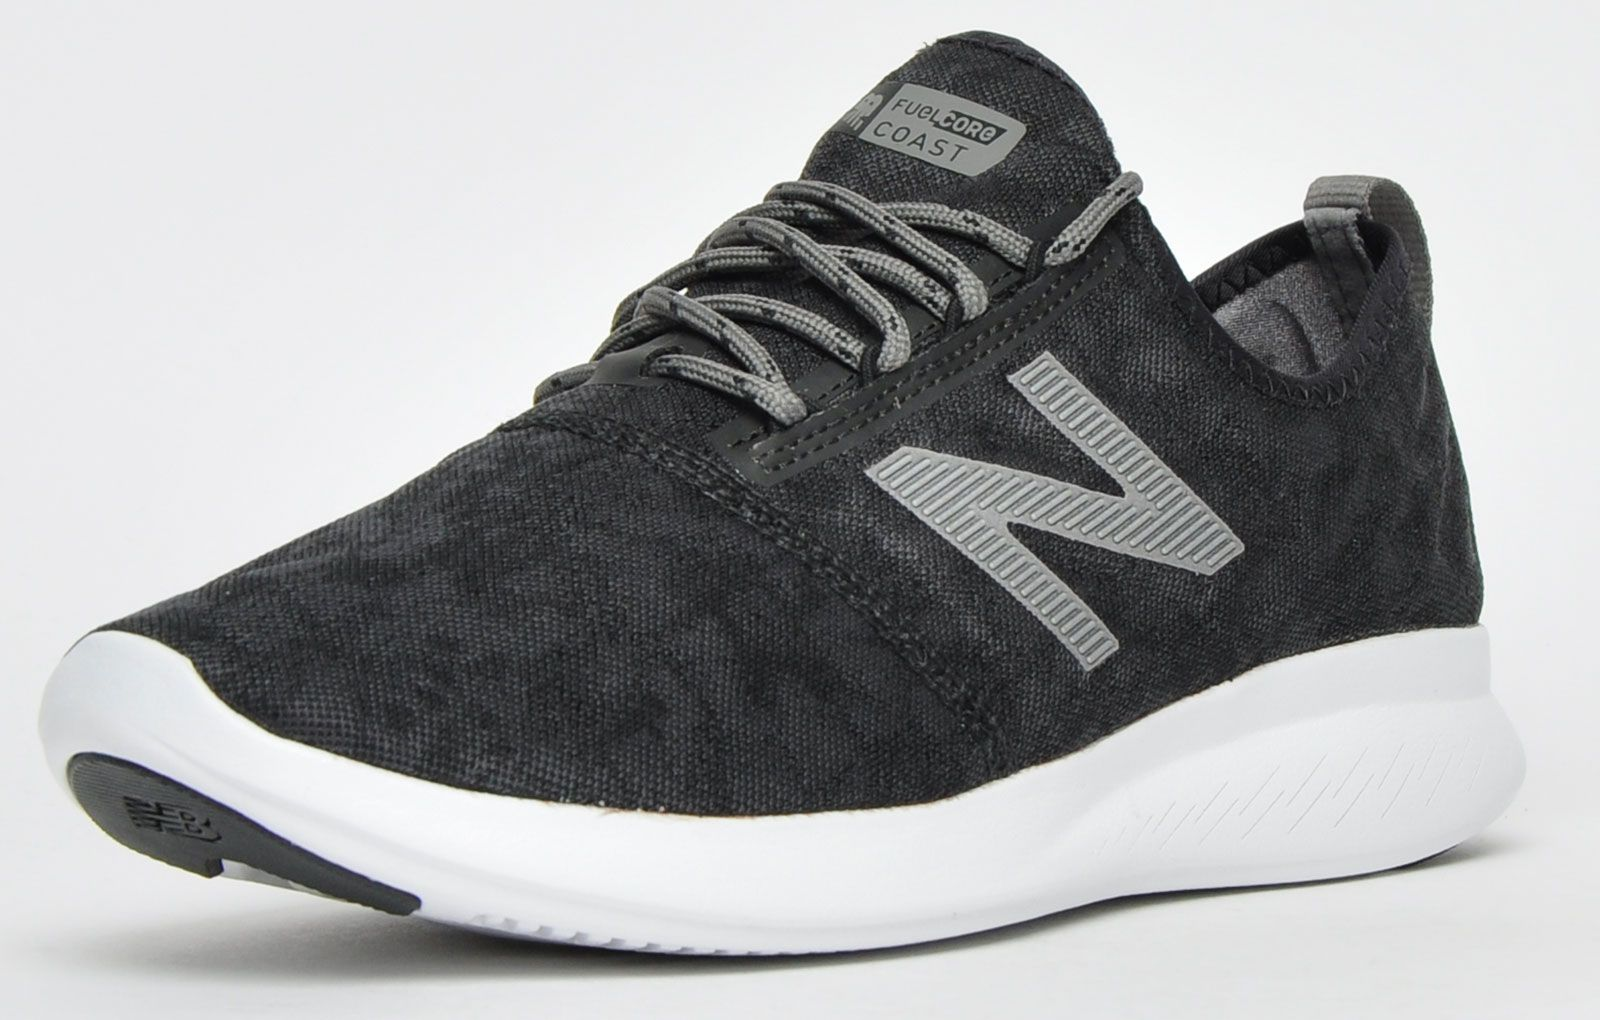 New Balance Fuel Core Coast v4 Mens